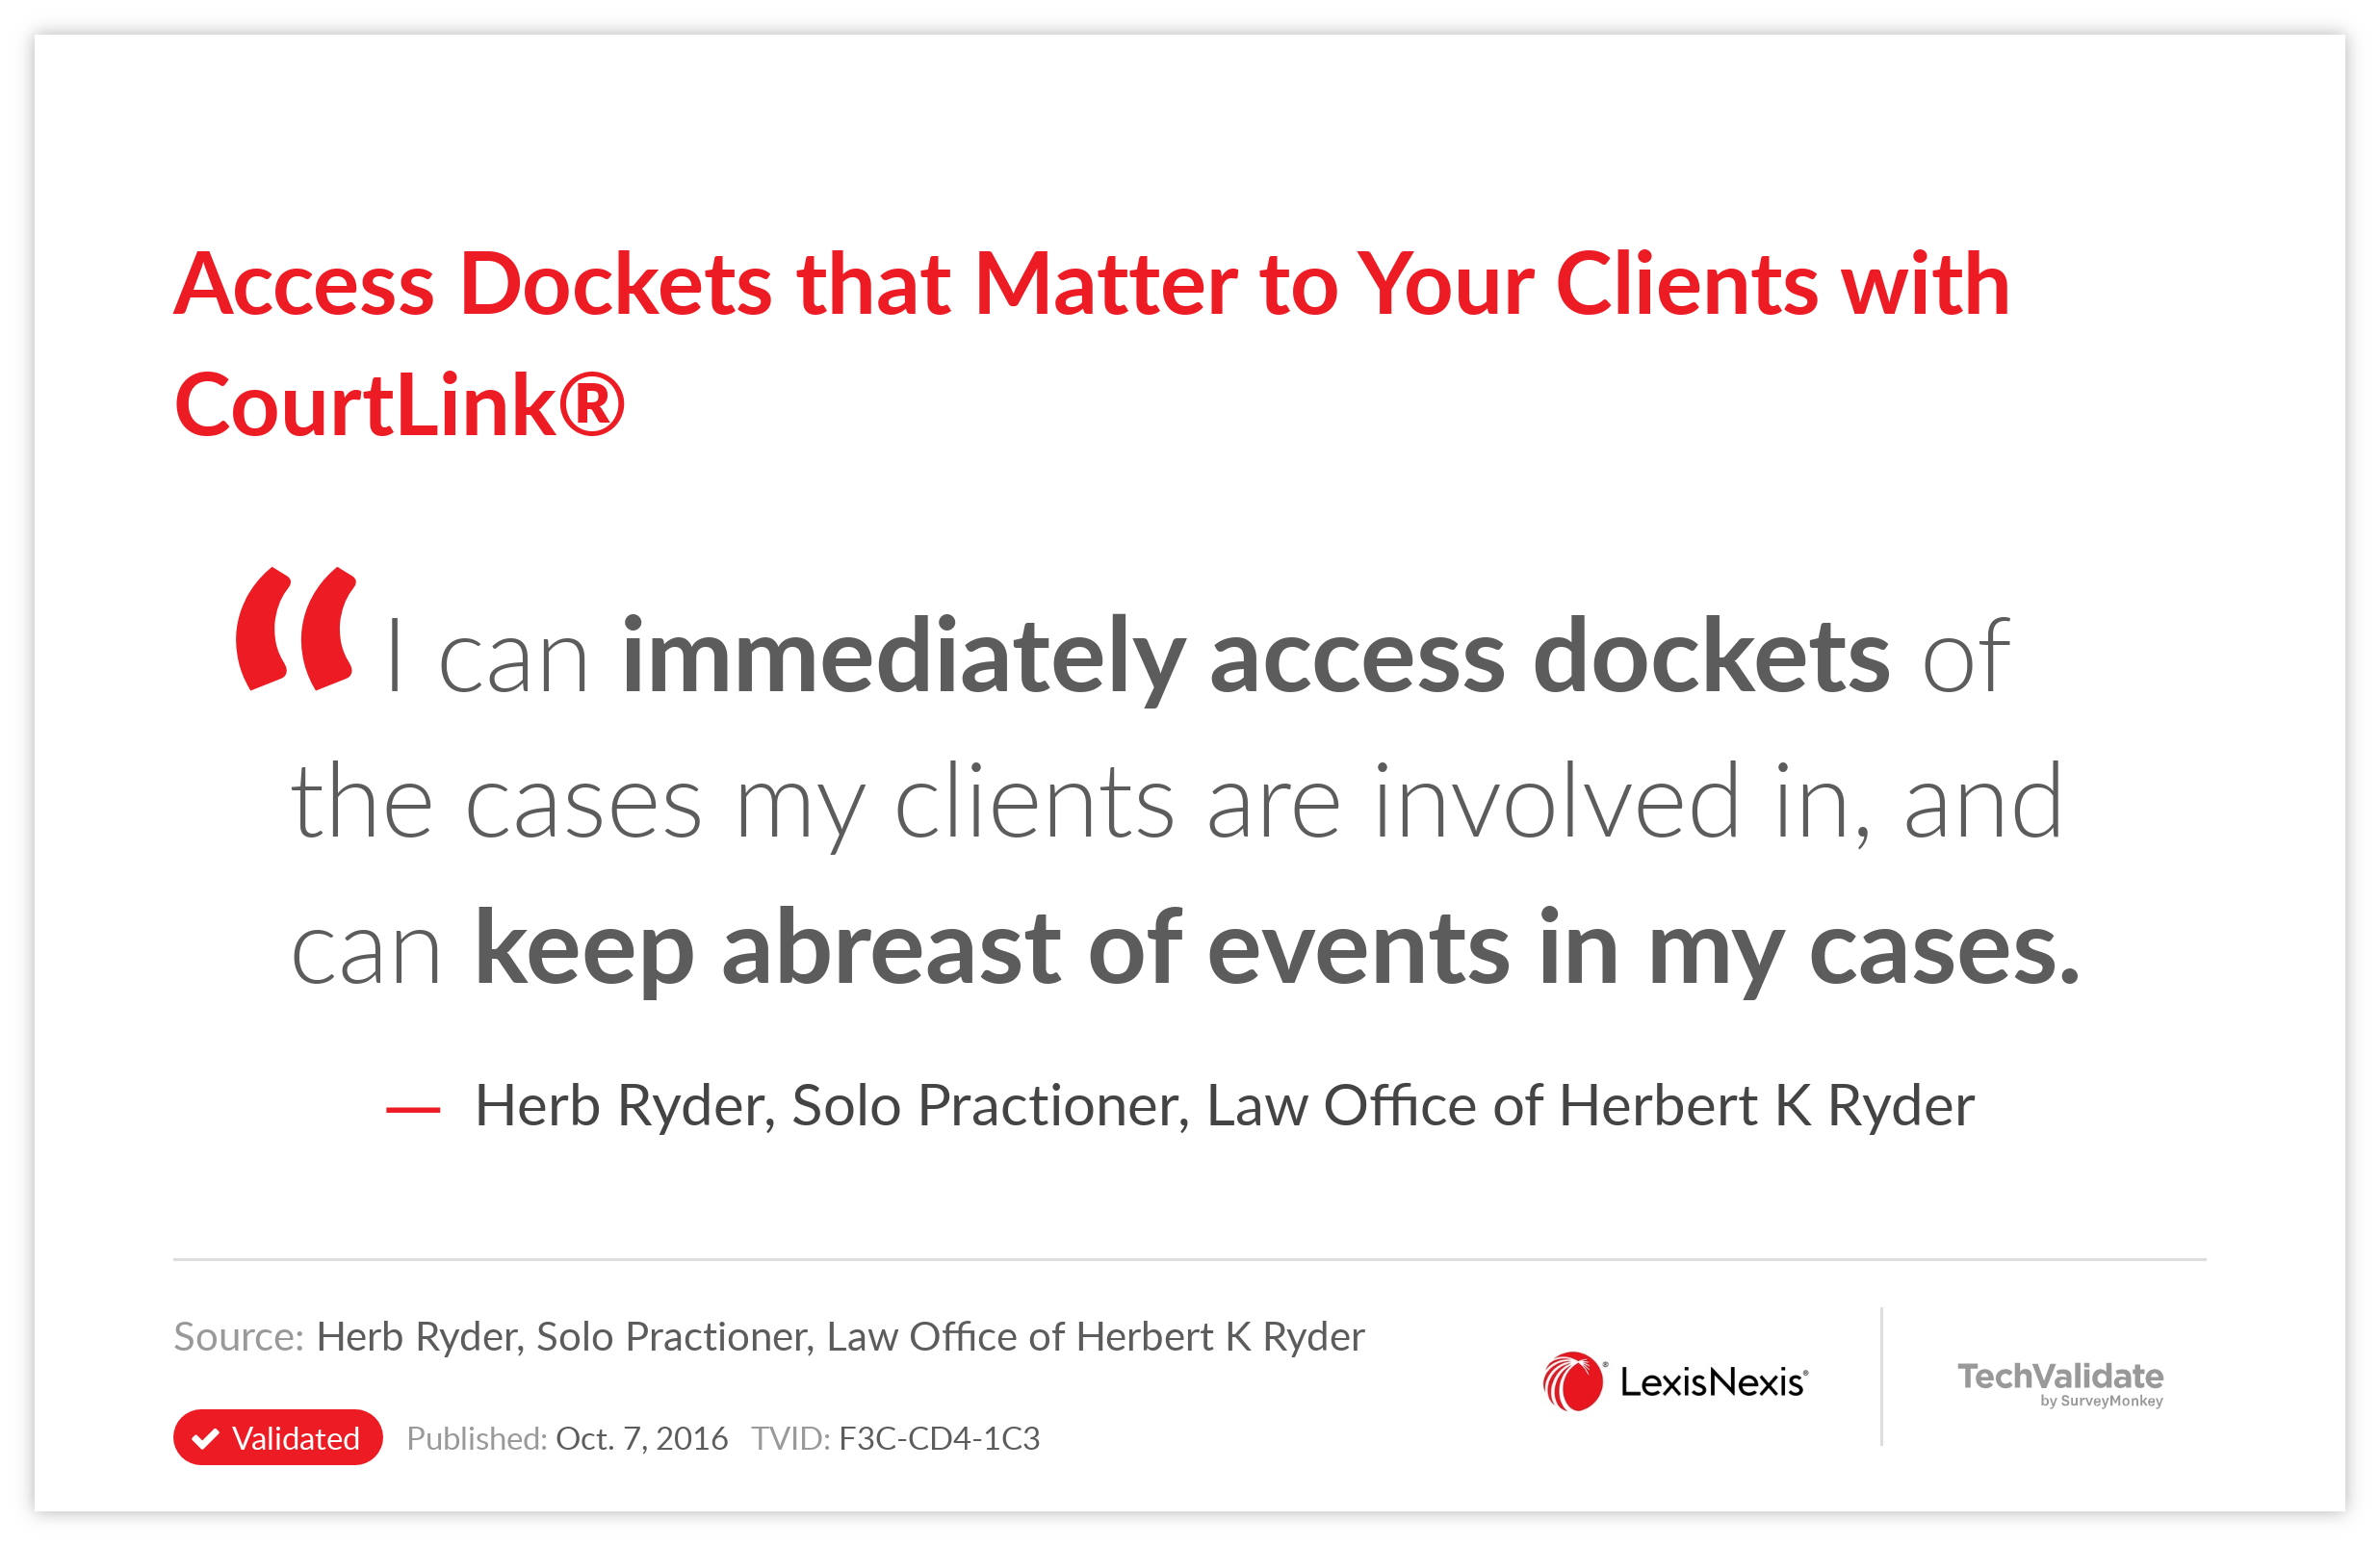 Access Dockets that Matter to Your Clients with CourtLink(R)